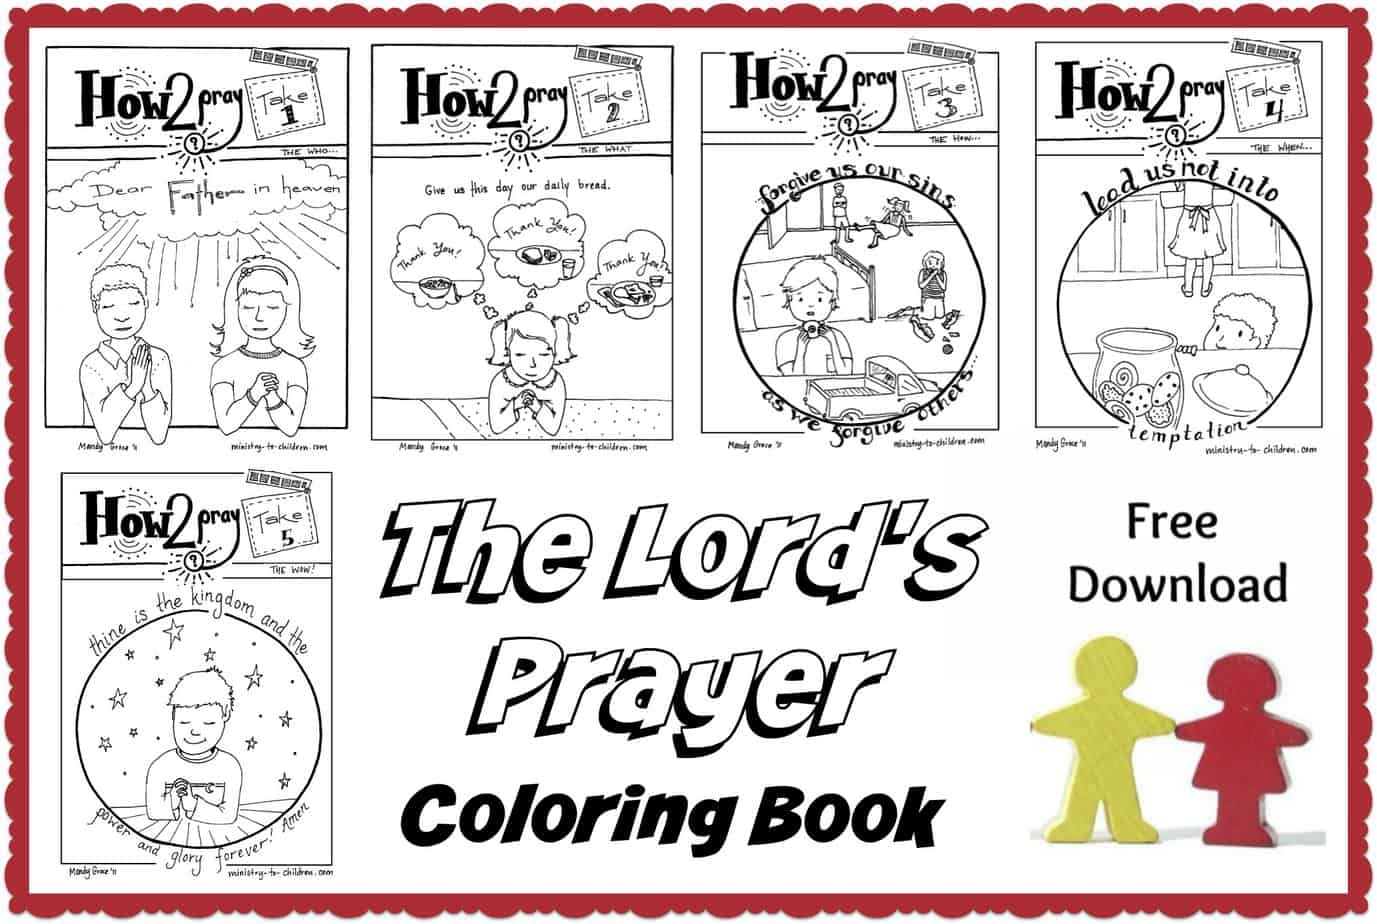 Show Photo furthermore The Lords Prayer Coloring Book in addition Show Photo in addition C F F E E Ad C D also Lords Prayer. on our father prayer coloring book